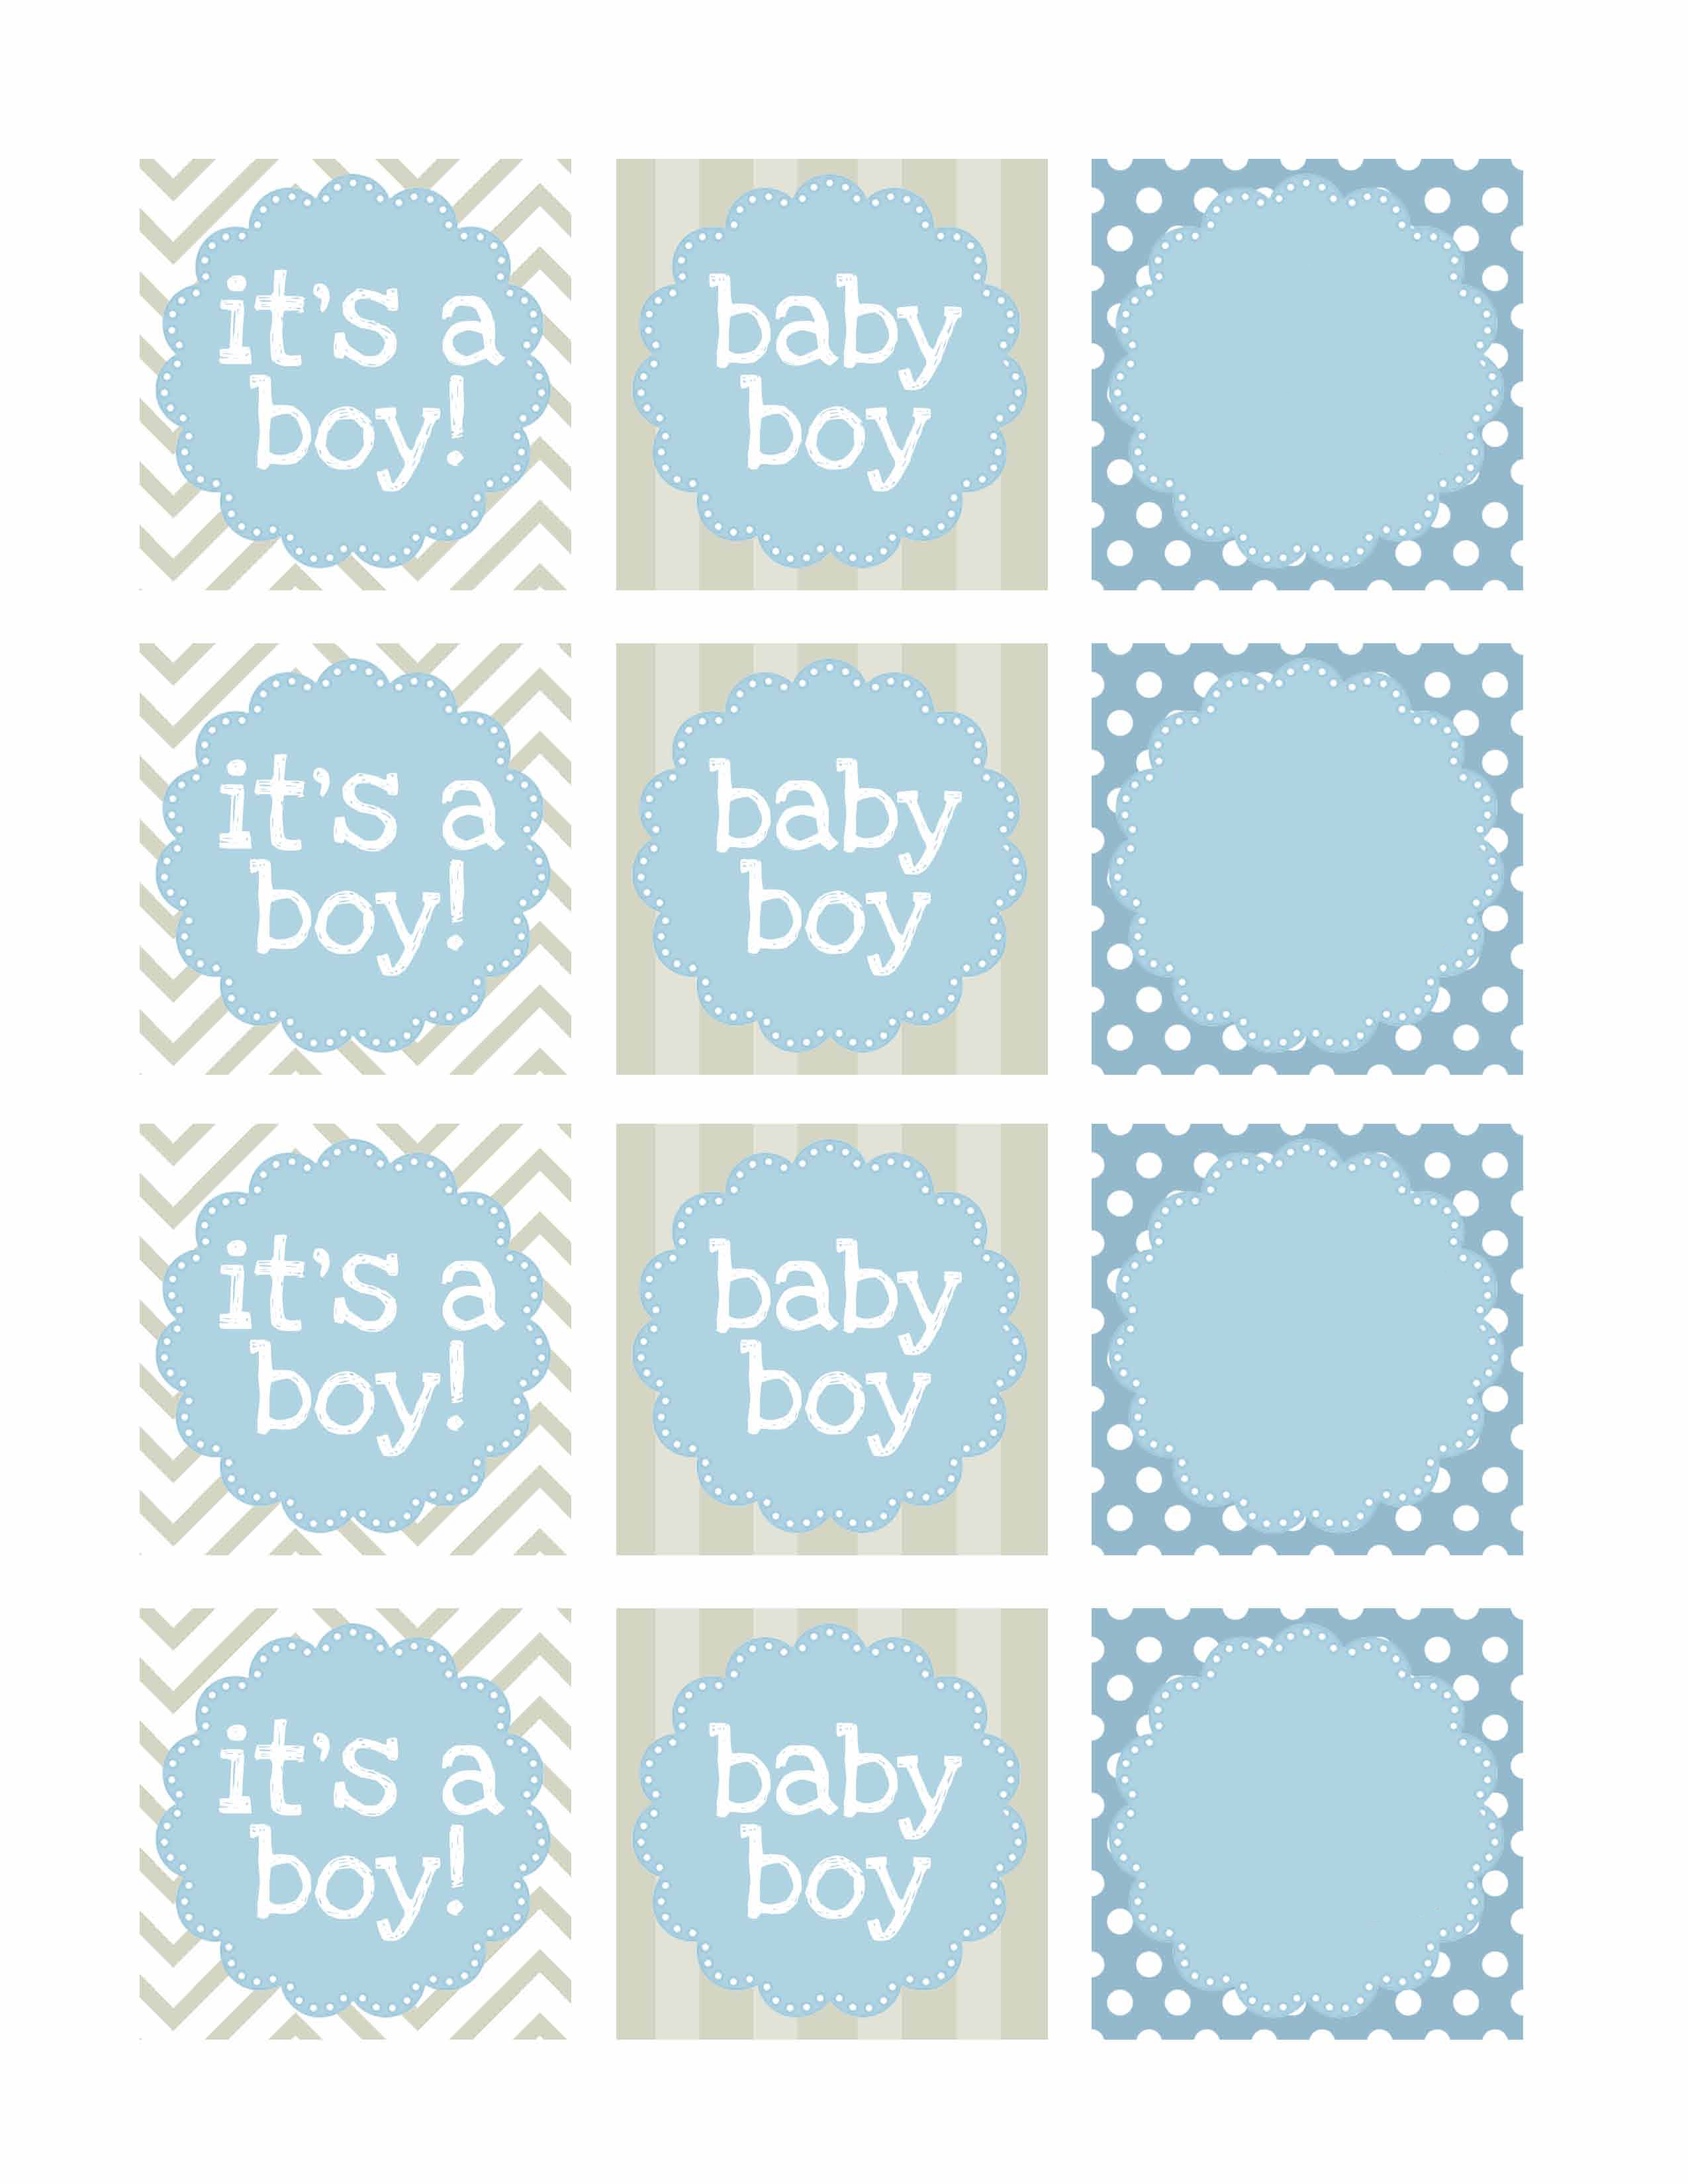 027 Favor Tags Template Ideas Free Baby Shower ~ Ulyssesroom - Free Printable Baby Shower Favor Tags Template